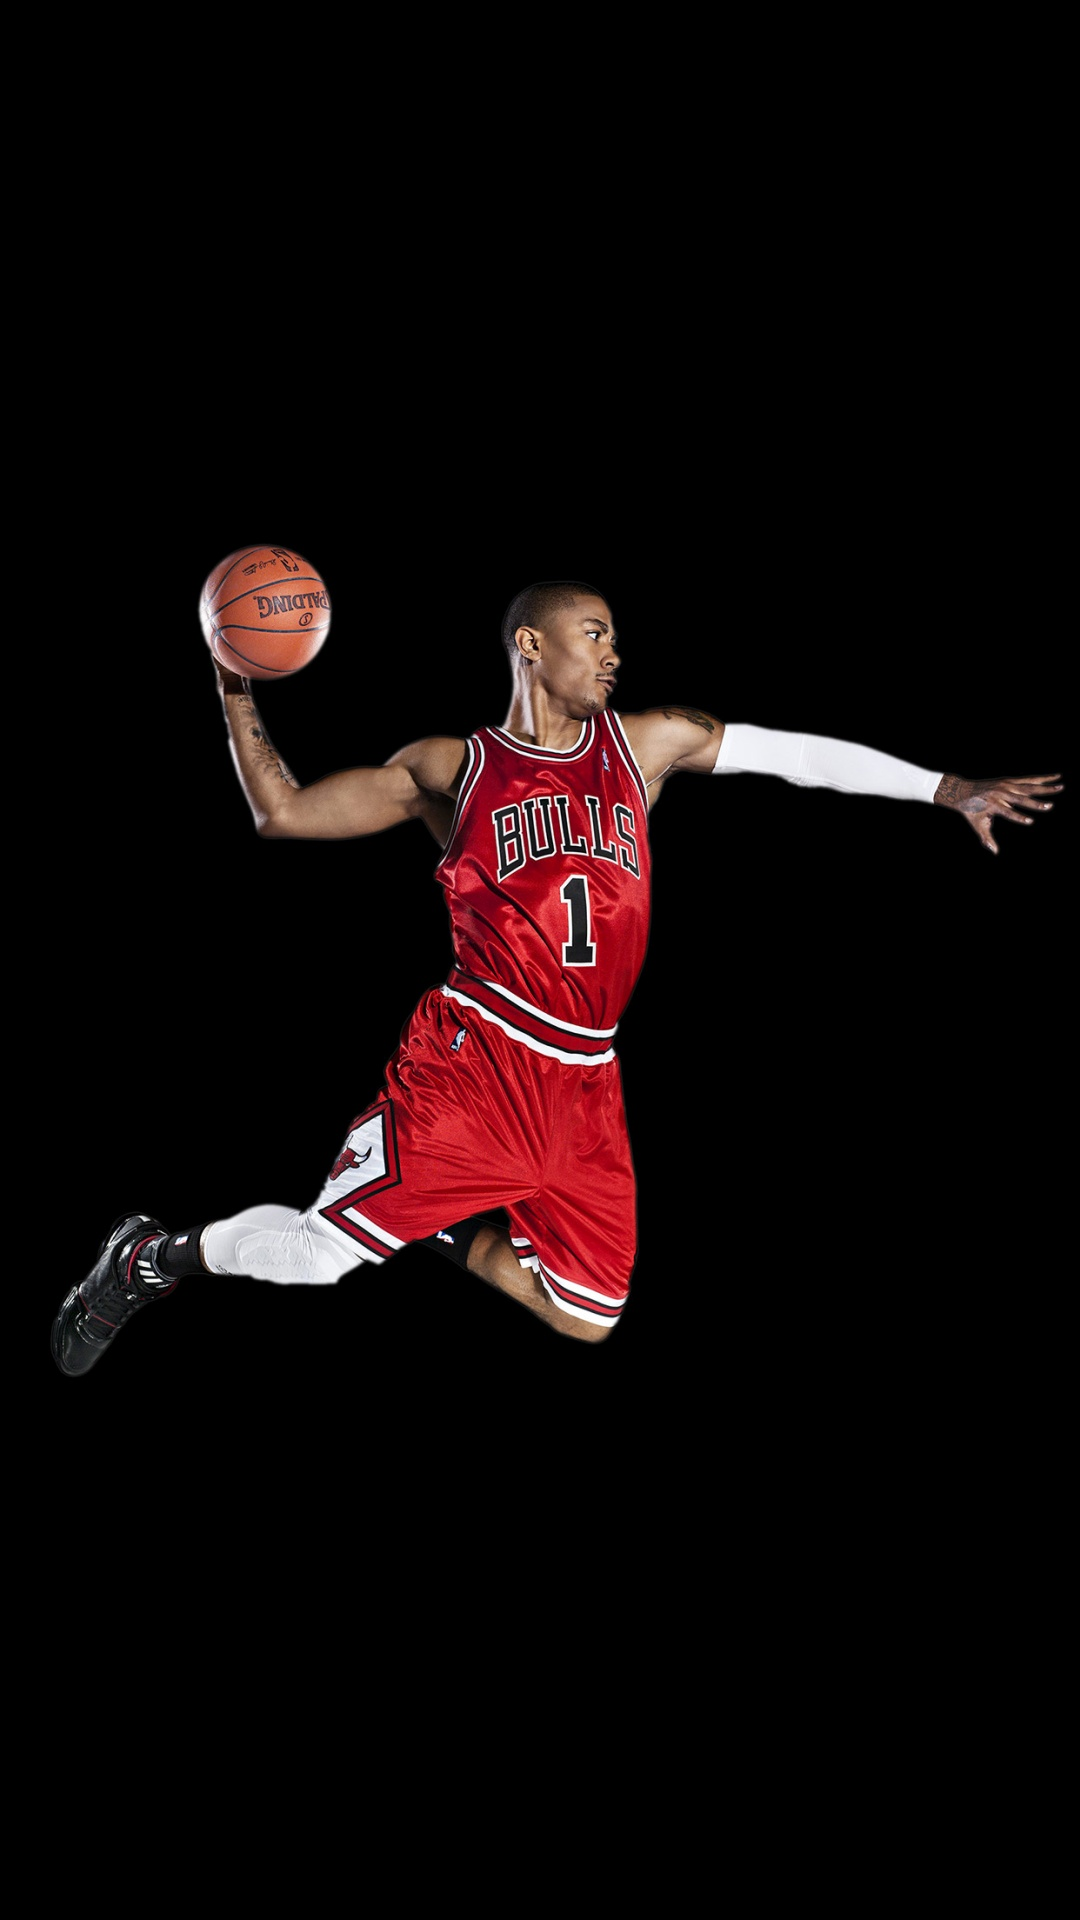 Chicago Bulls Derrick Rose iPhone 6 HD Wallpaper iPod Wallpaper HD 1080x1920